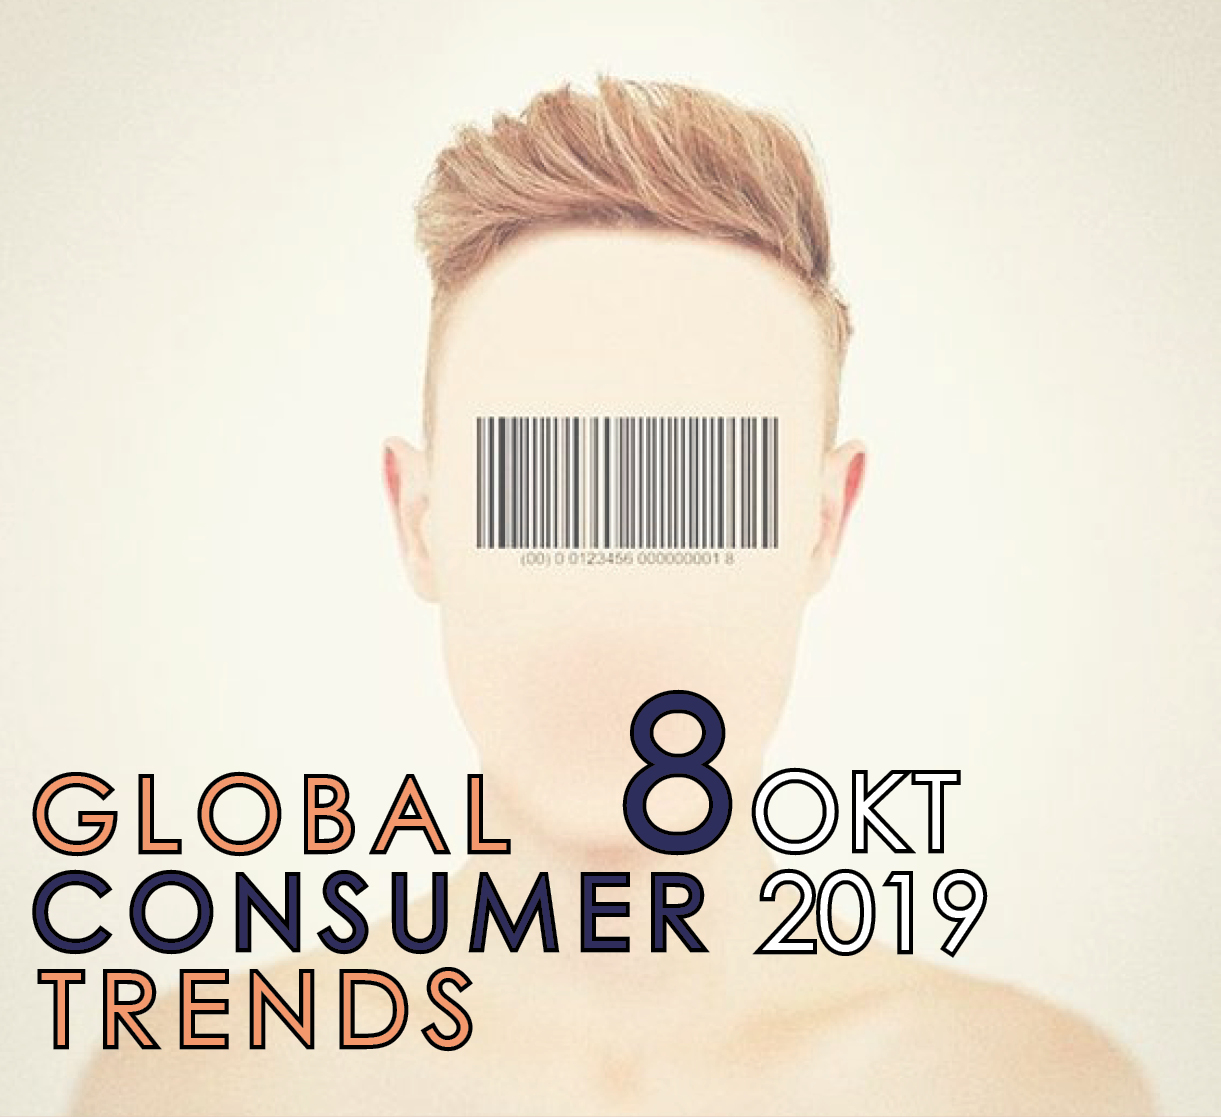 consumertrends